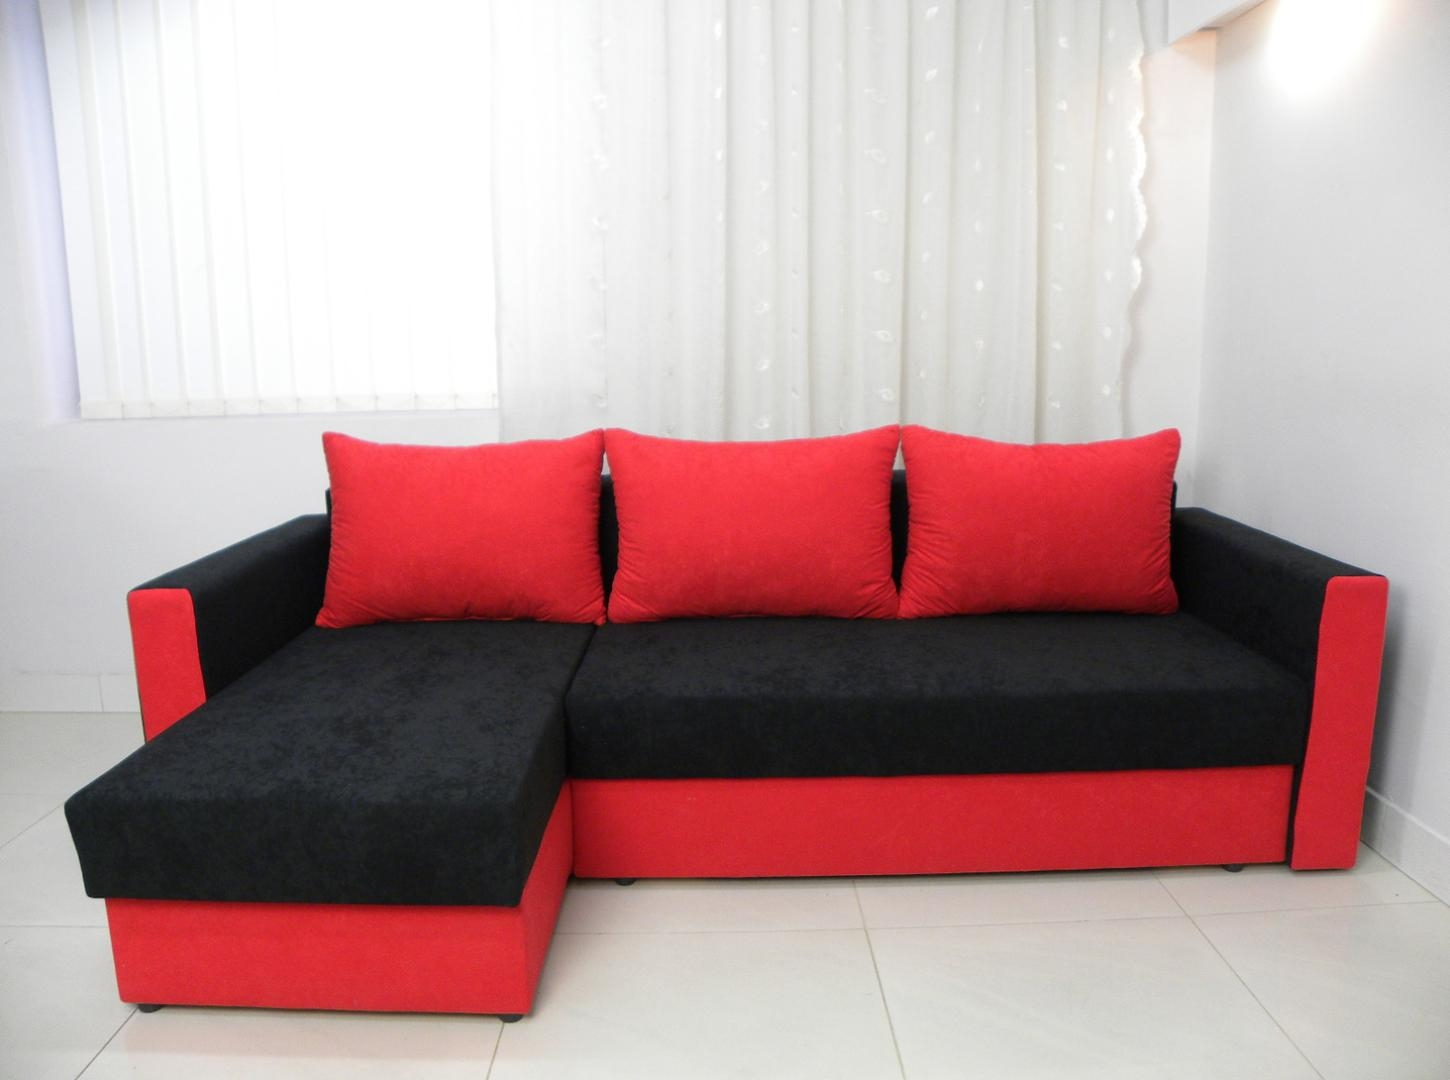 Sofa Corner Bed Red Redditch South Wales Leather Cover Birmingham Inside Corner Sofa Bed Sale (View 2 of 20)